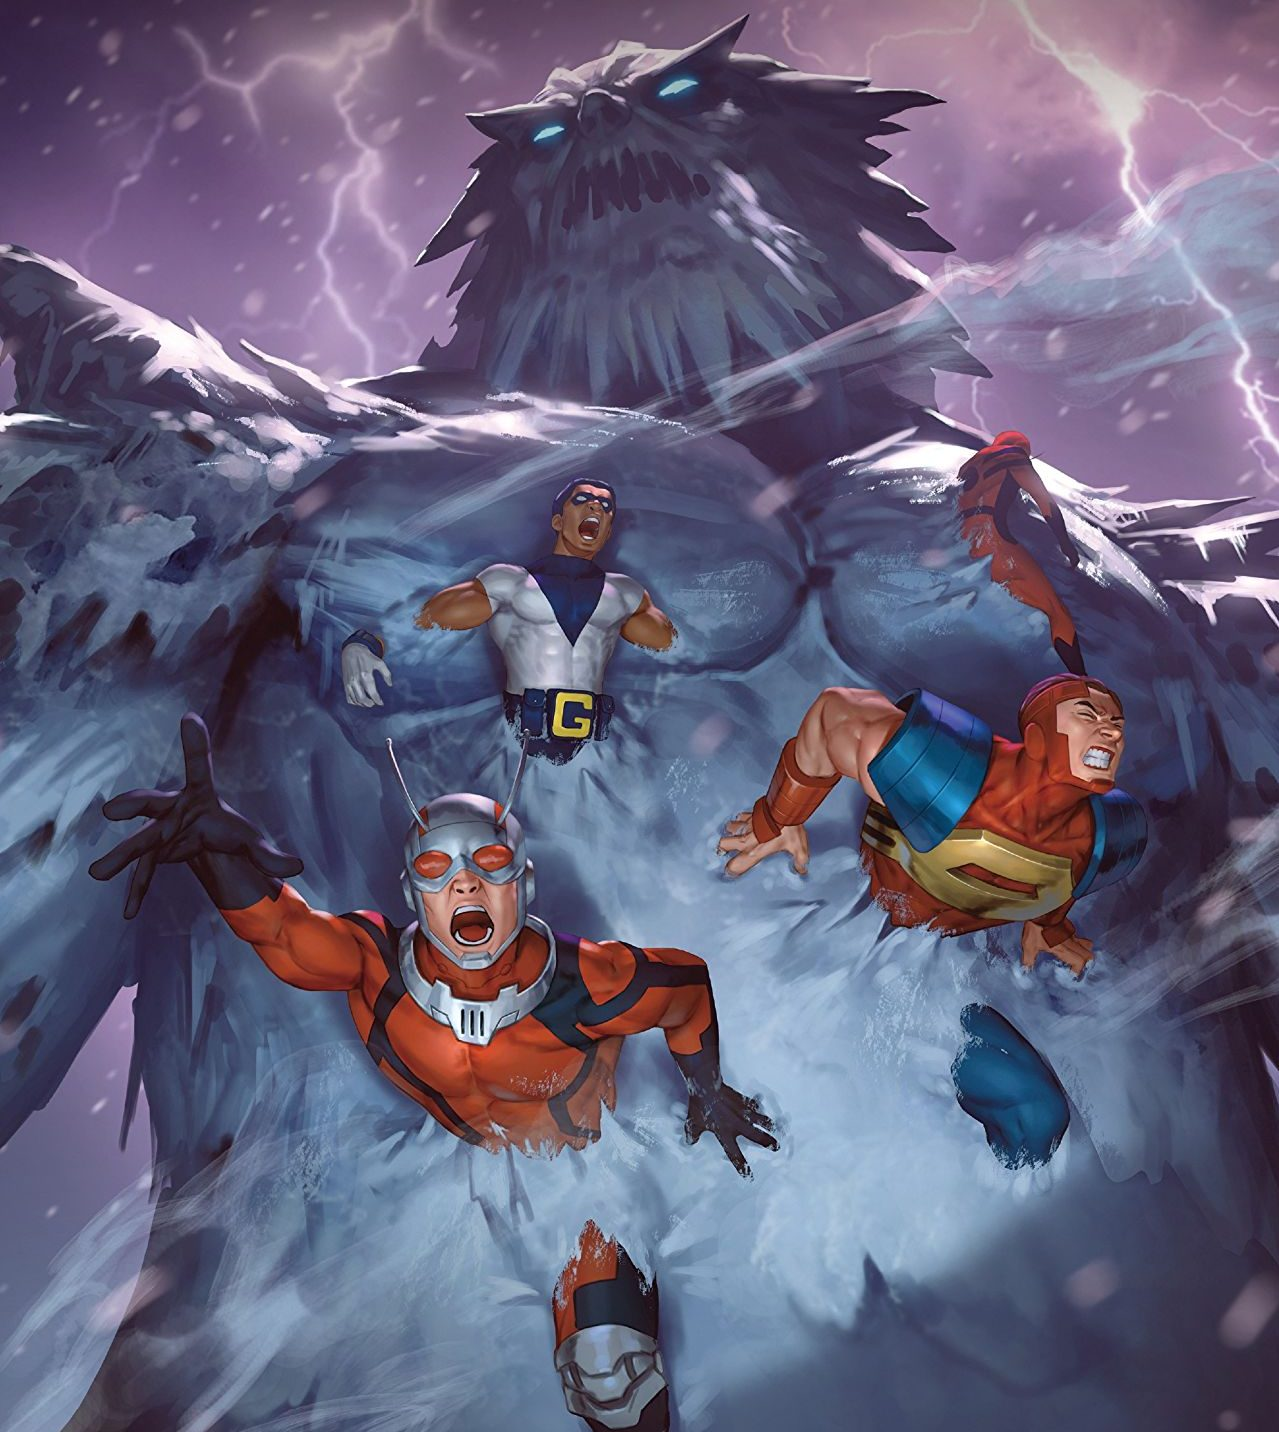 Giant-Man #2 Review